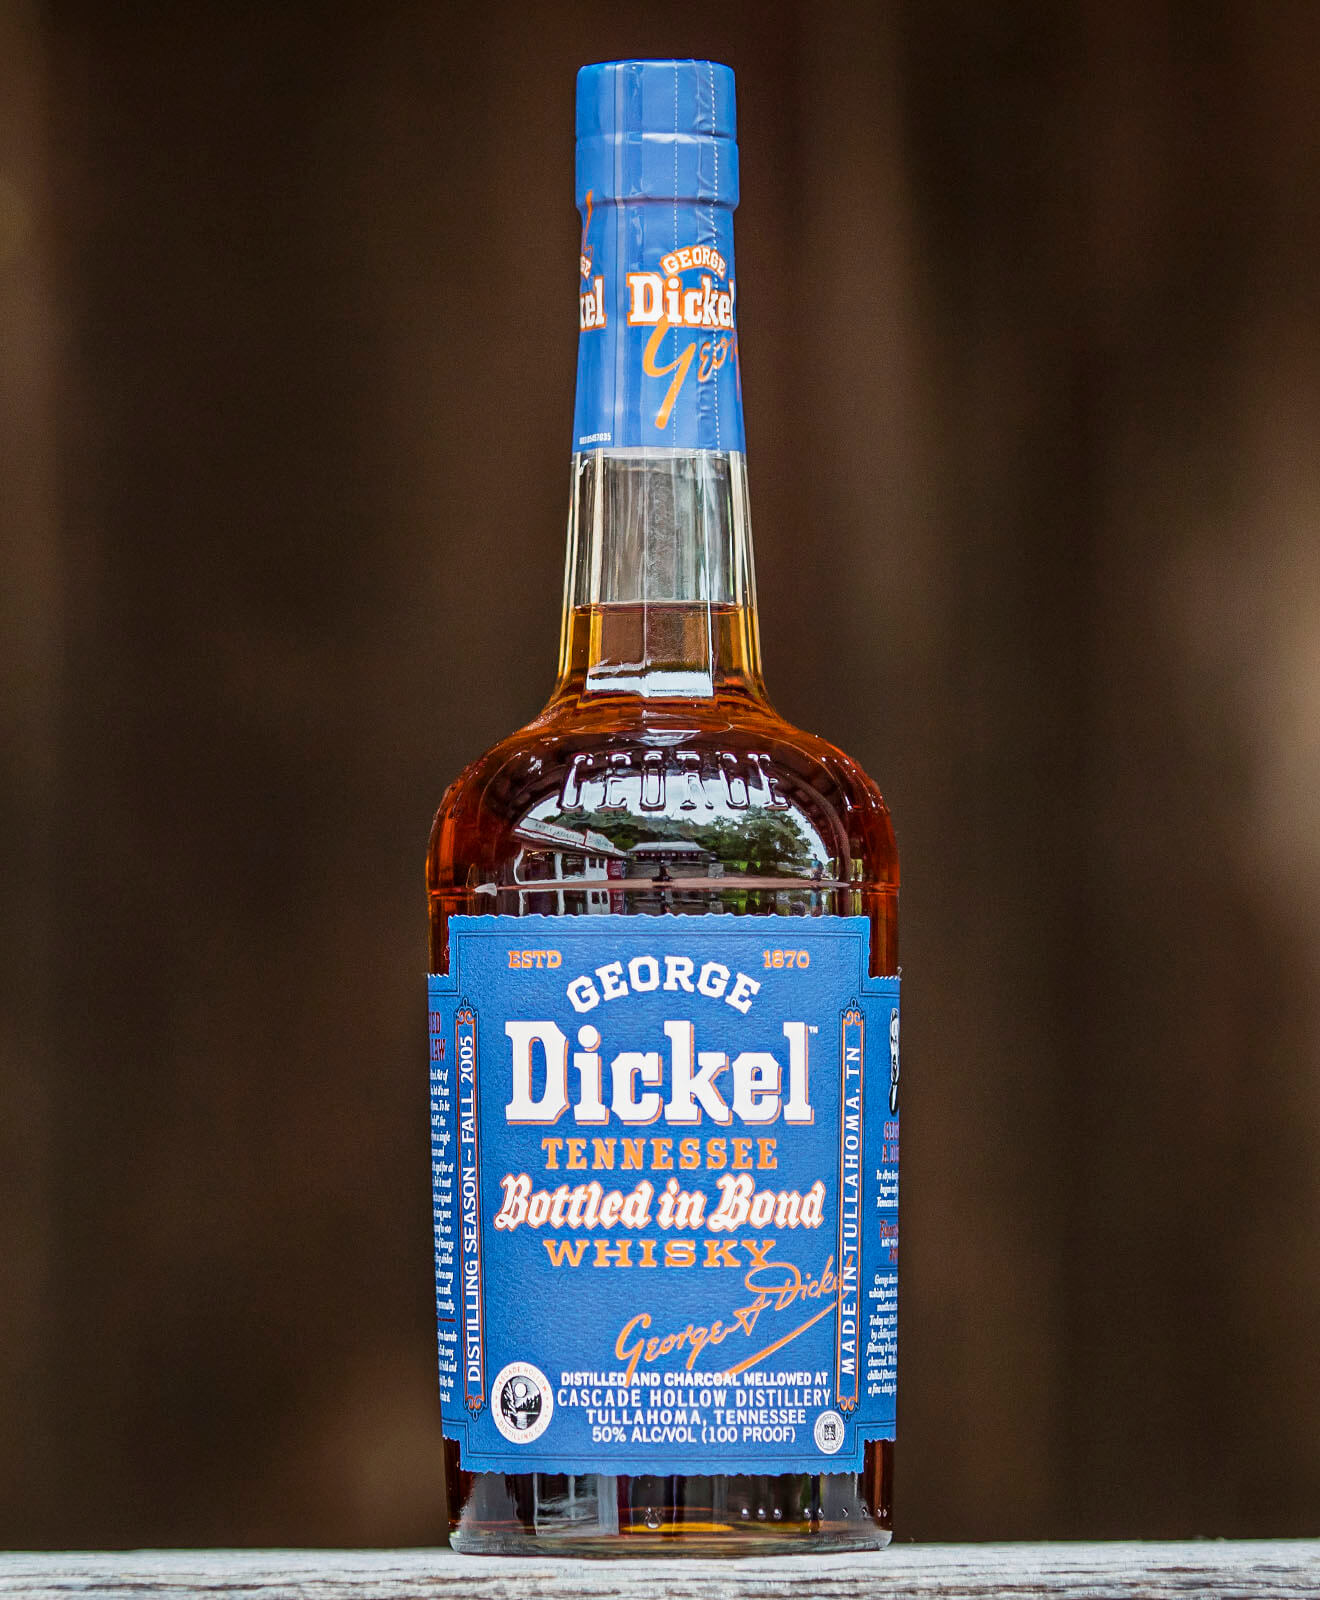 George Dickel 13 Year Old Bottled in Bond